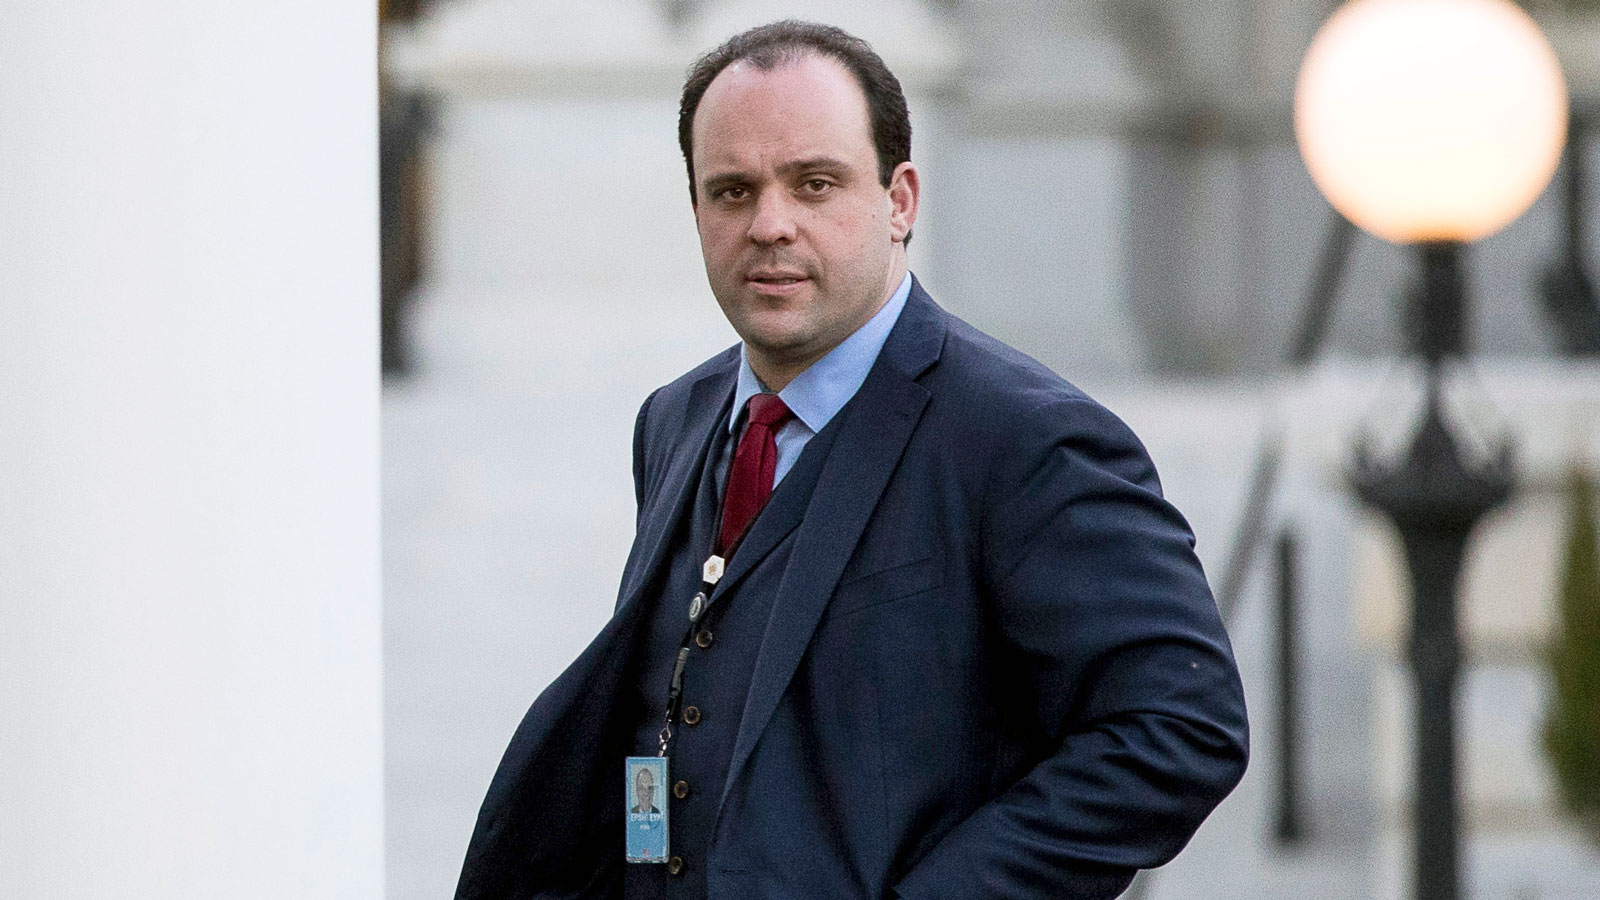 Sinclair drops political commentary segments by former Trump aide Boris Epshteyn